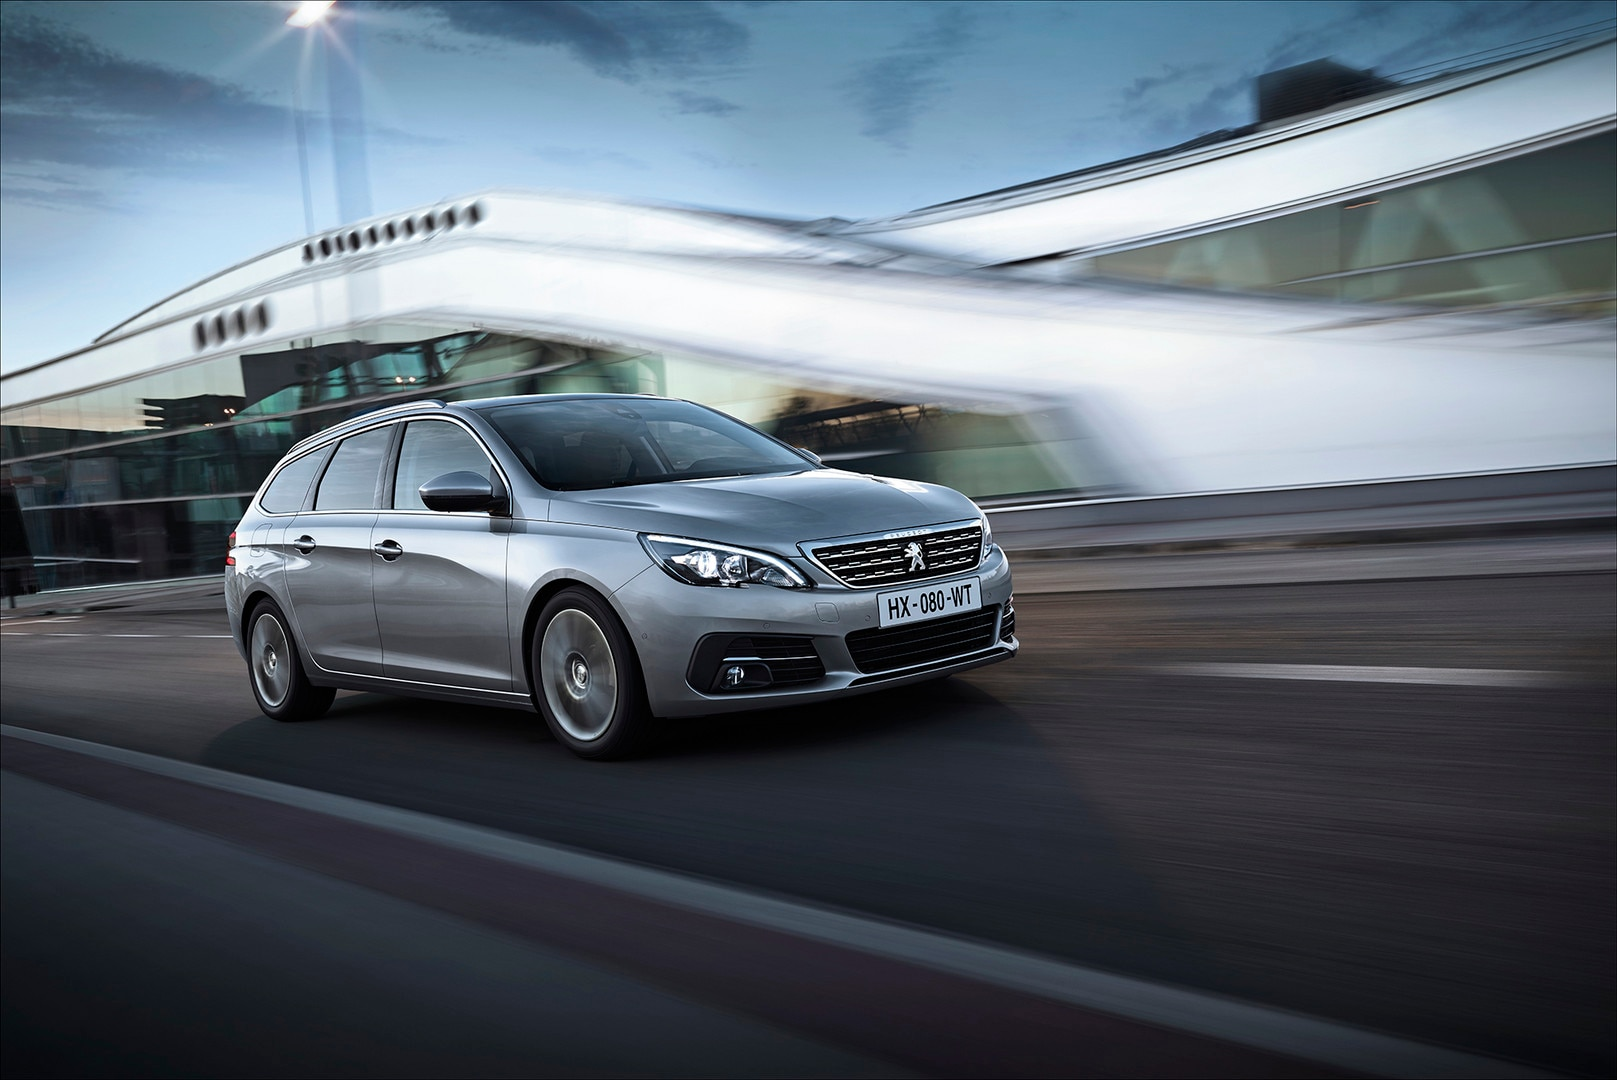 PEUGEOT 308 Touring New Car Showroom | Family Wagon | Test Drive Today